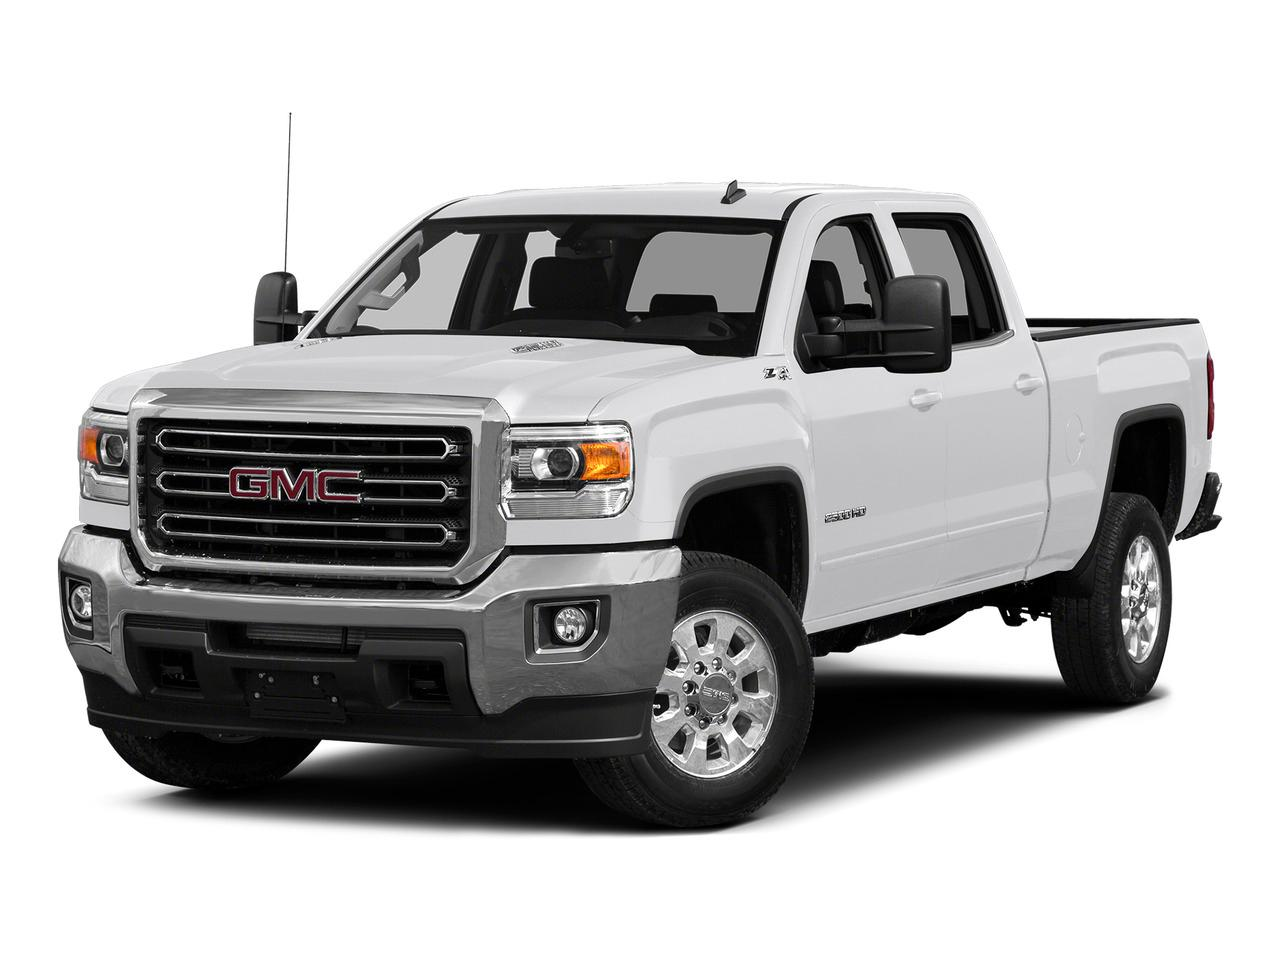 2015 GMC Sierra 2500HD available WiFi Vehicle Photo in Pawling, NY 12564-3219